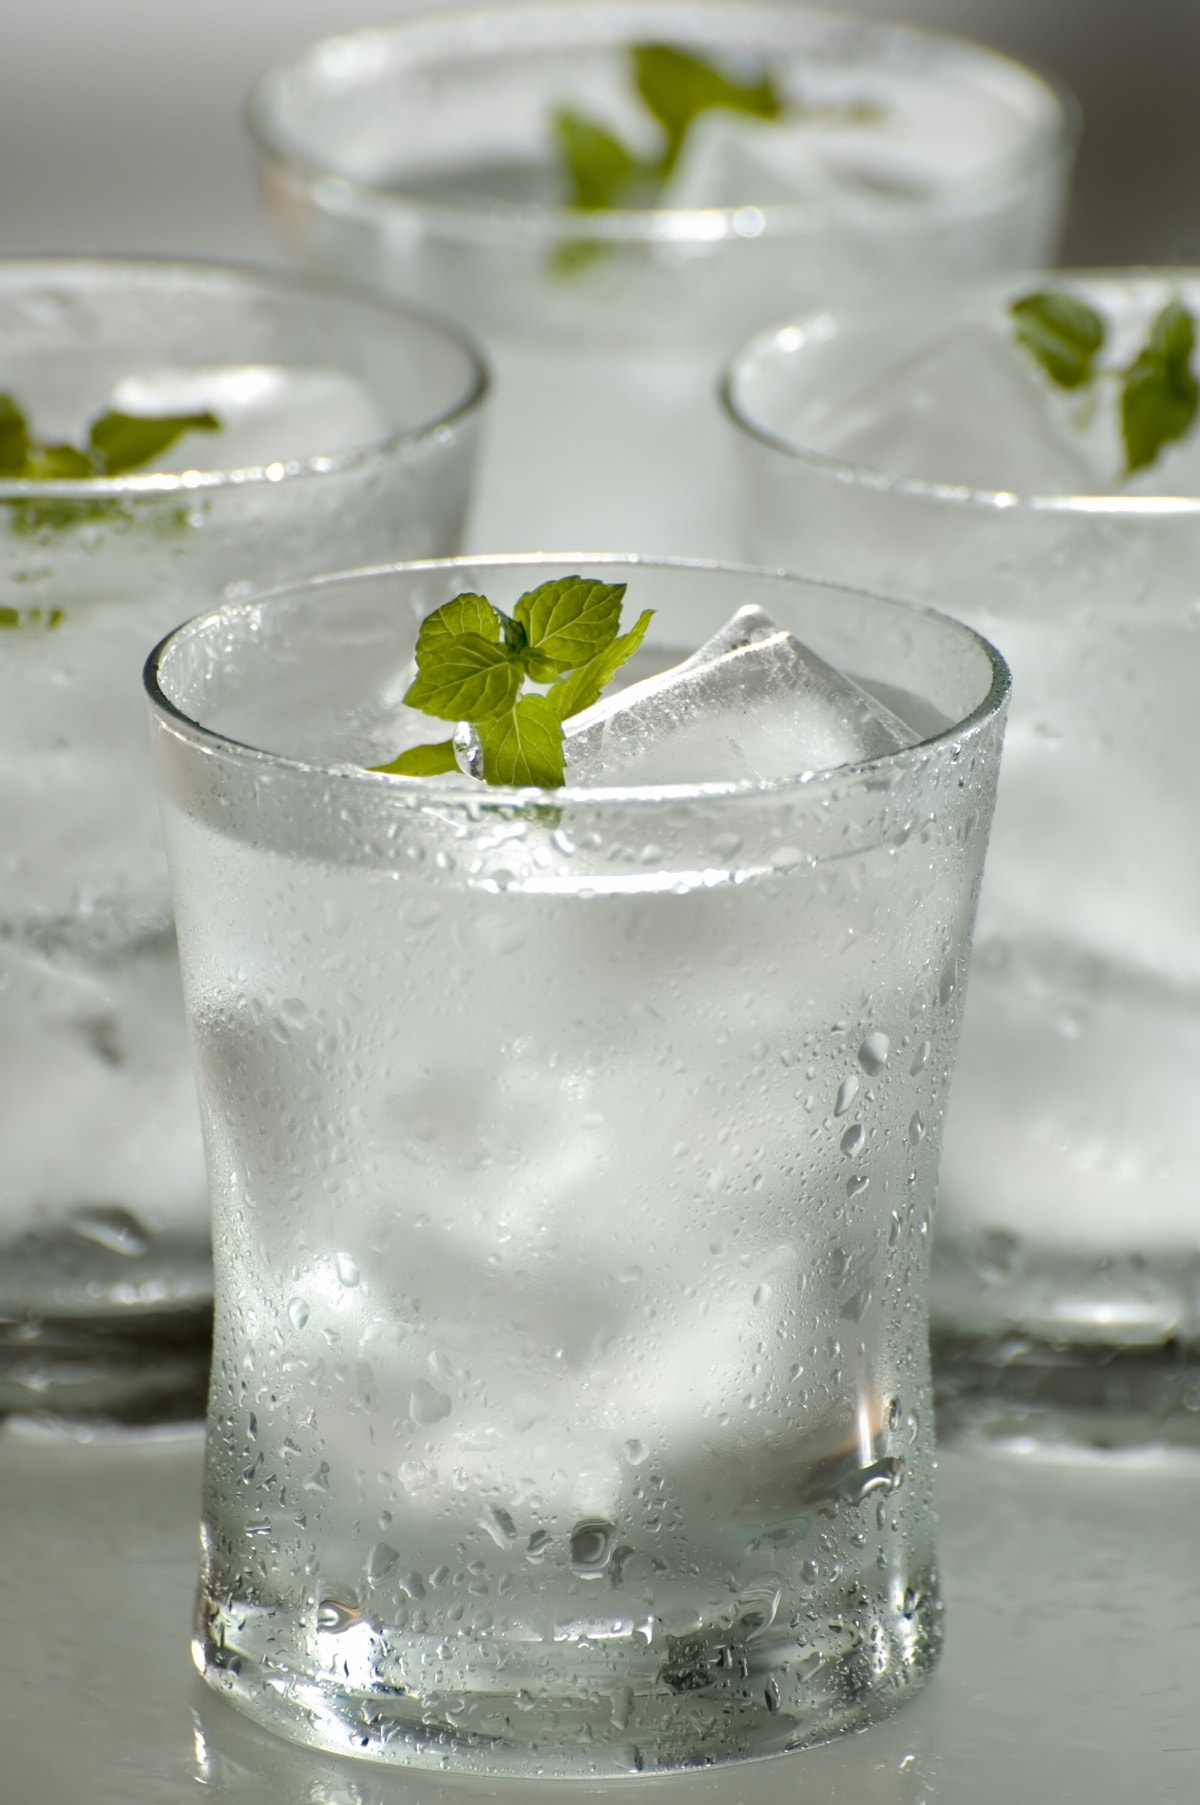 water in glasses and ice, garnished with mint leaves